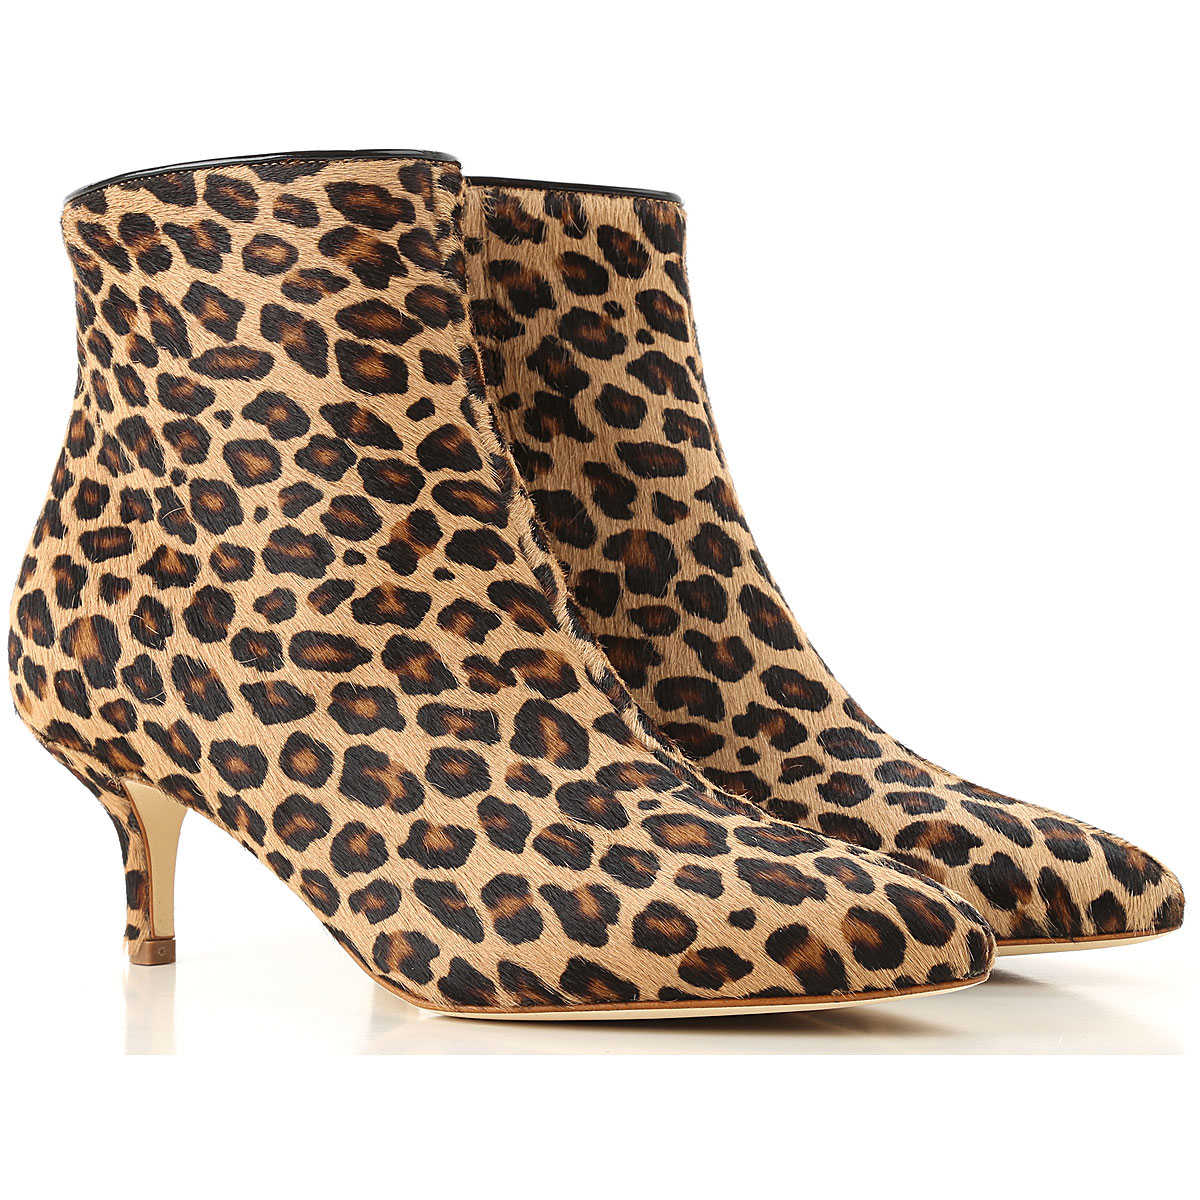 Polly Plume Boots for Women Booties On Sale SE - GOOFASH